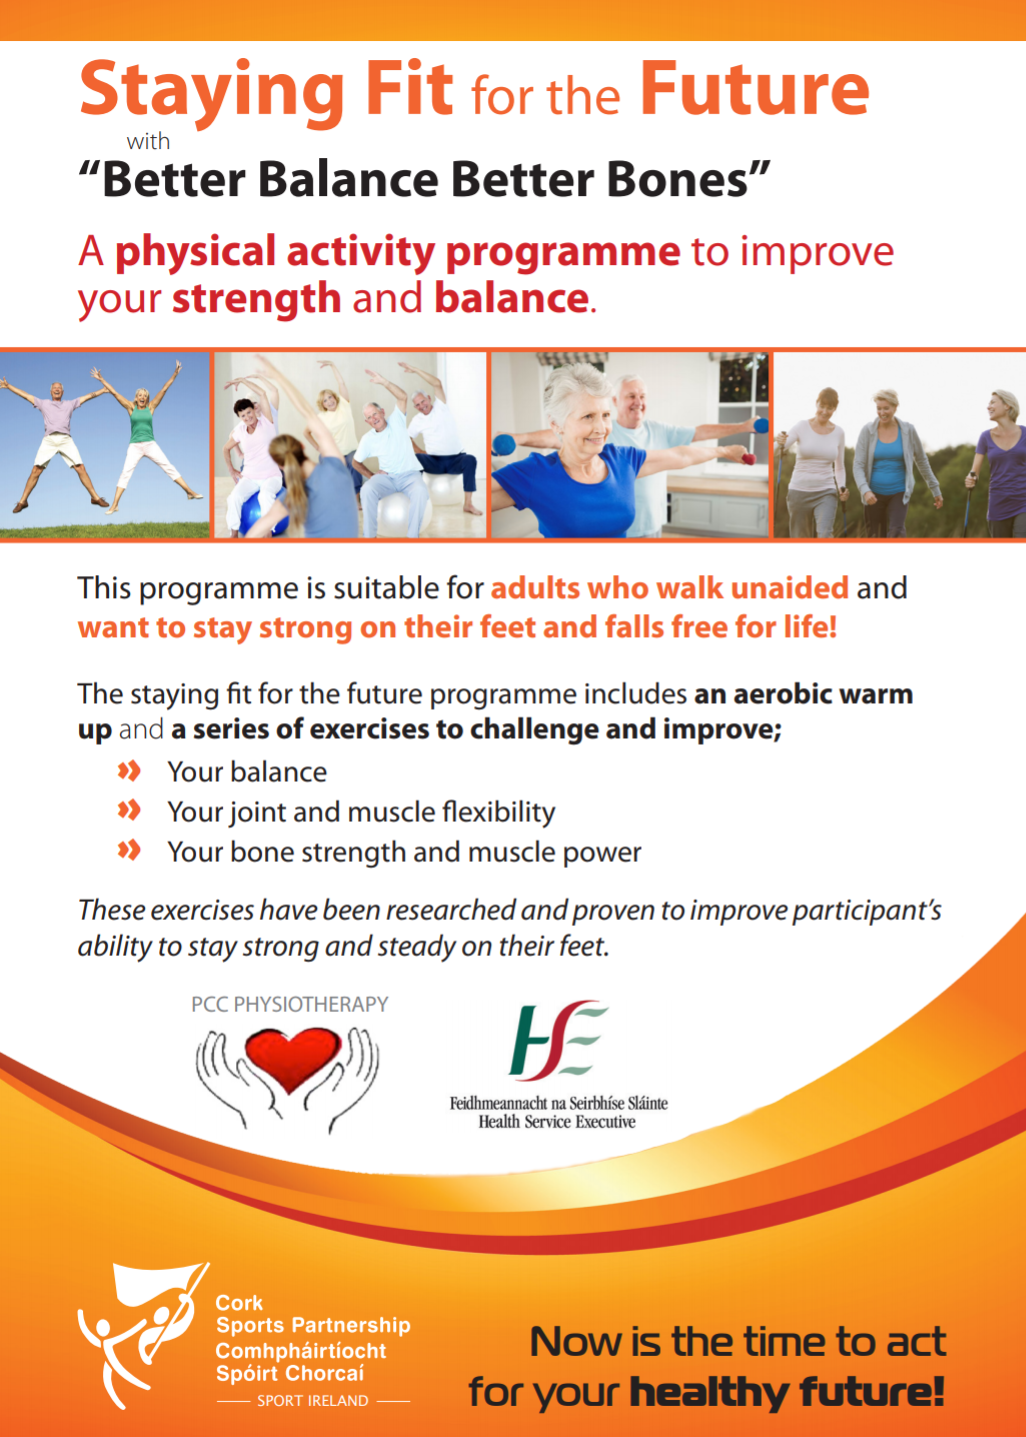 Cork Sports Partnership in conjunction with HSE Organises Staying Fit for the Future with Better Balance Better Bones programme throughout North Cork